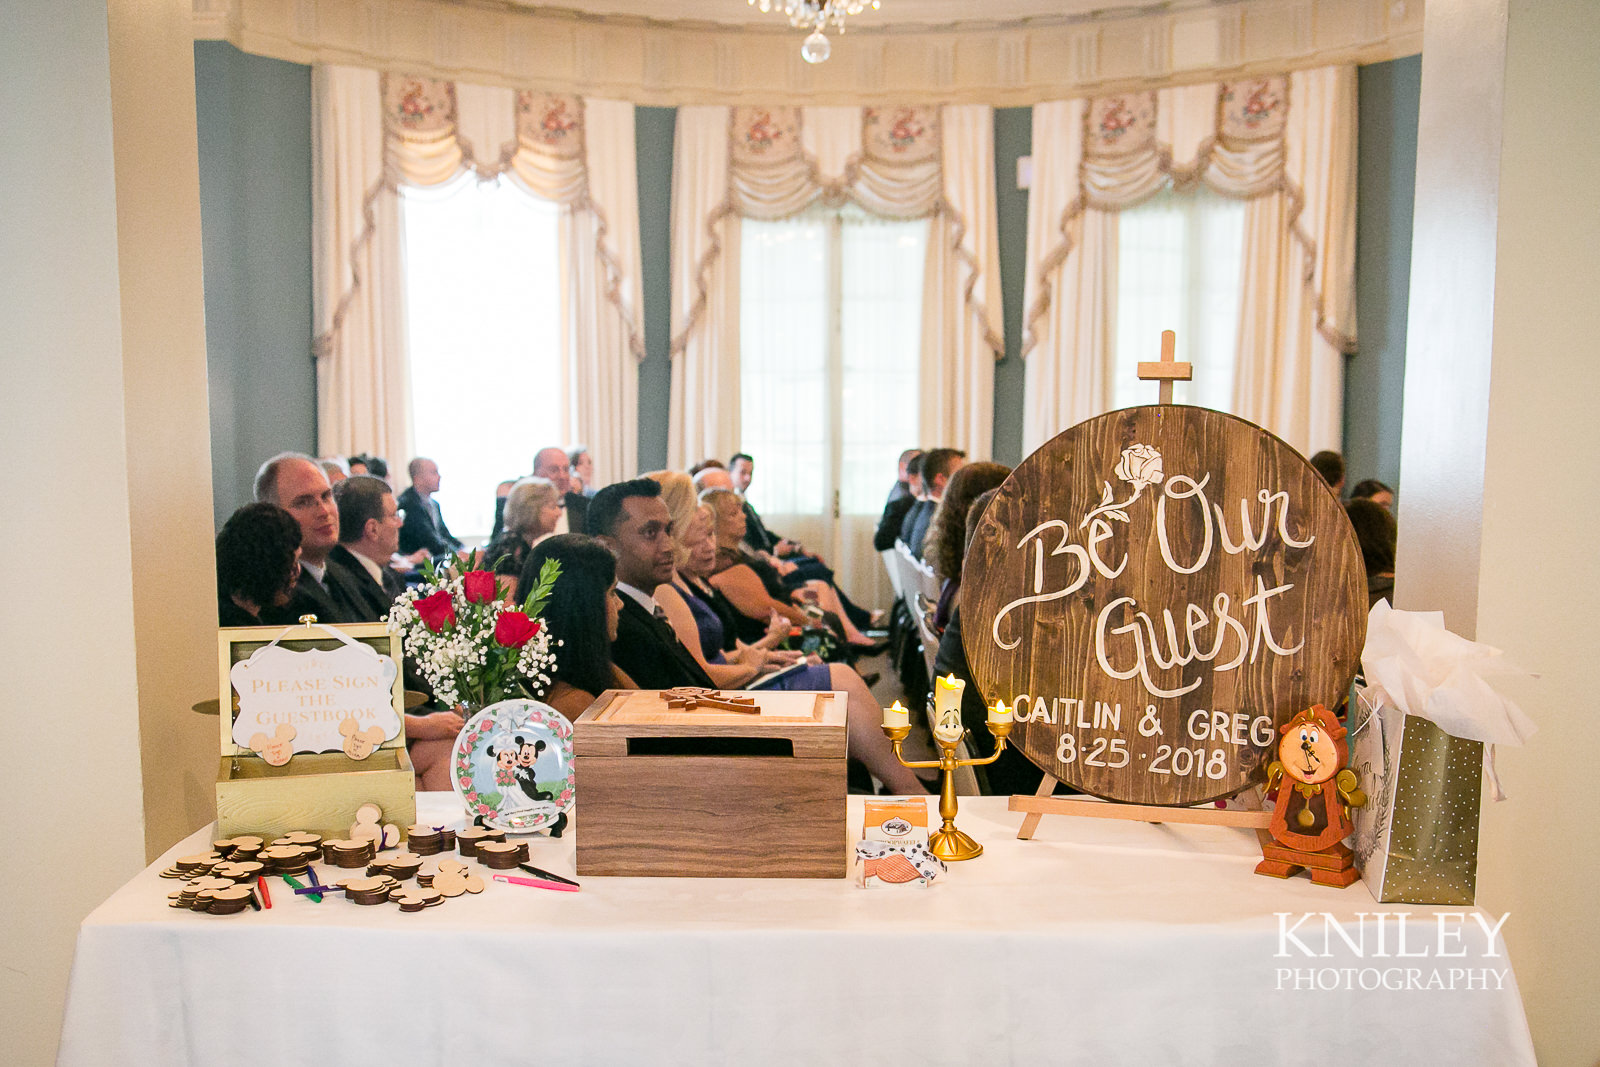 062 - Rochester NY wedding pictures - Genesee Valley Club - Ceremony and Reception - IMG_6061.jpg